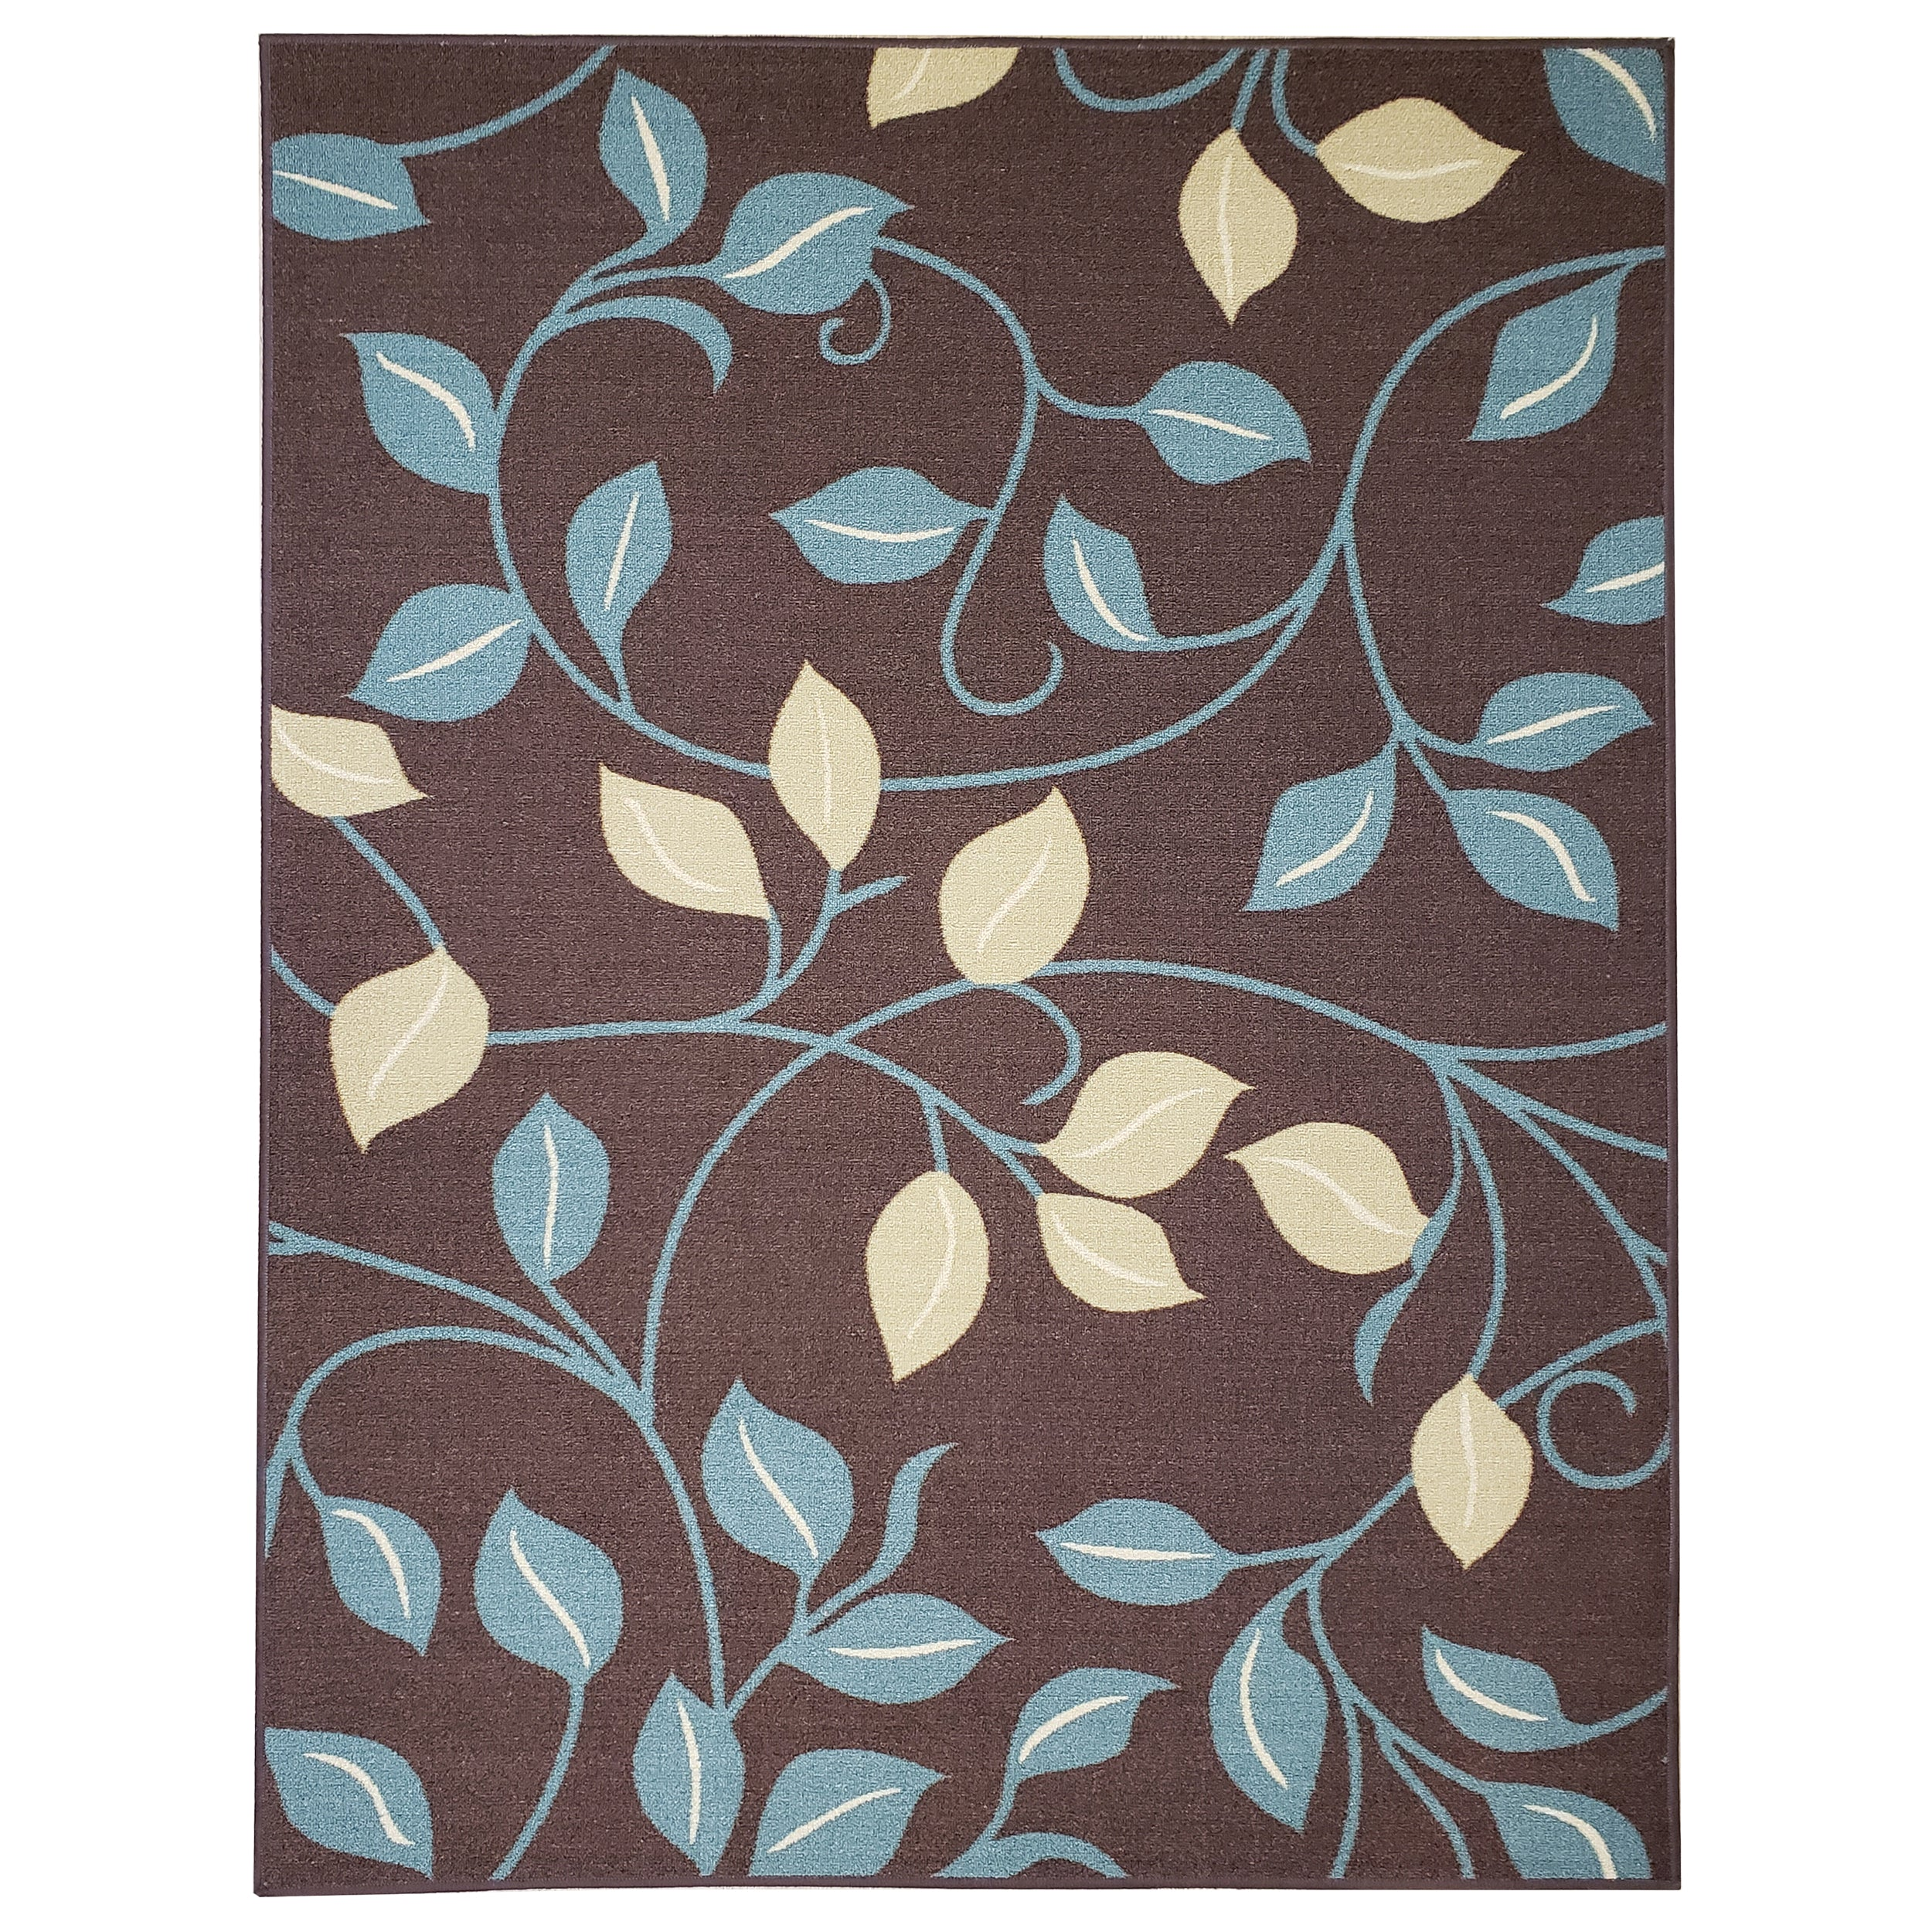 Belgio Rubber Backed Non Slip Rugs and Runners Brown Leaves